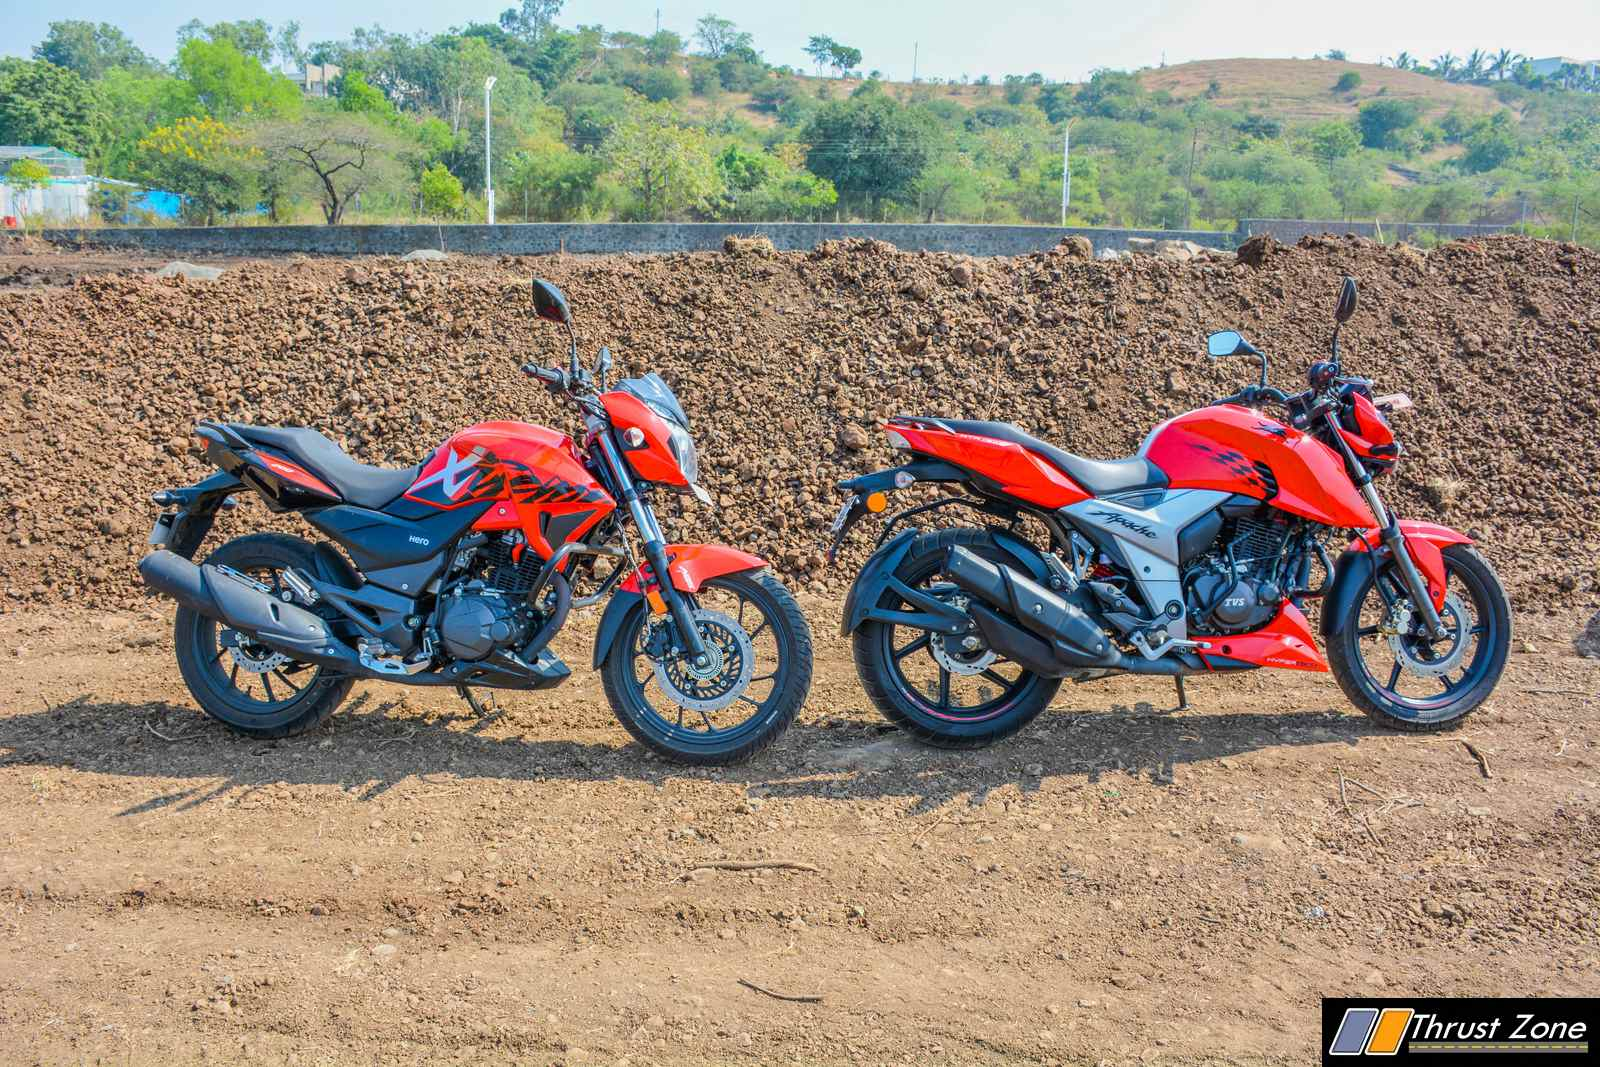 https://www.thrustzone.com/wp-content/uploads/2018/11/Hero-Xtreme-200R-vs-Apache-RTR-160-Comparison-Review-6.jpg